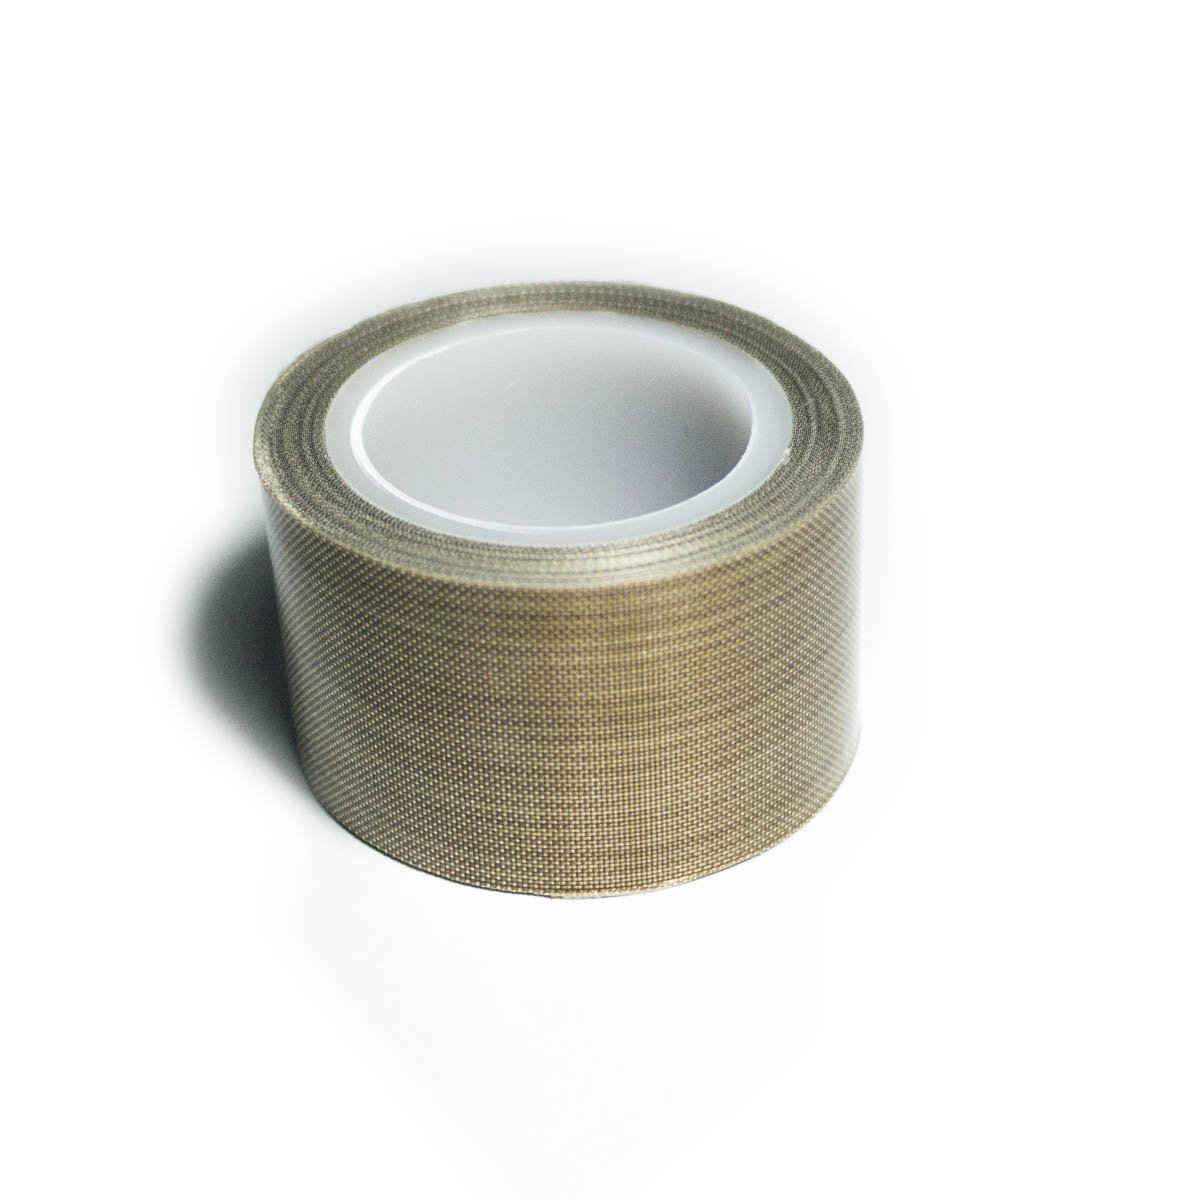 PTFE Coated Fabric Tape Teflon Adhesive Tape High Temperature Vacuum, Hand and Impulse Sealers Machine Sealing Tape 0.18mm Thick (30mm-10M)